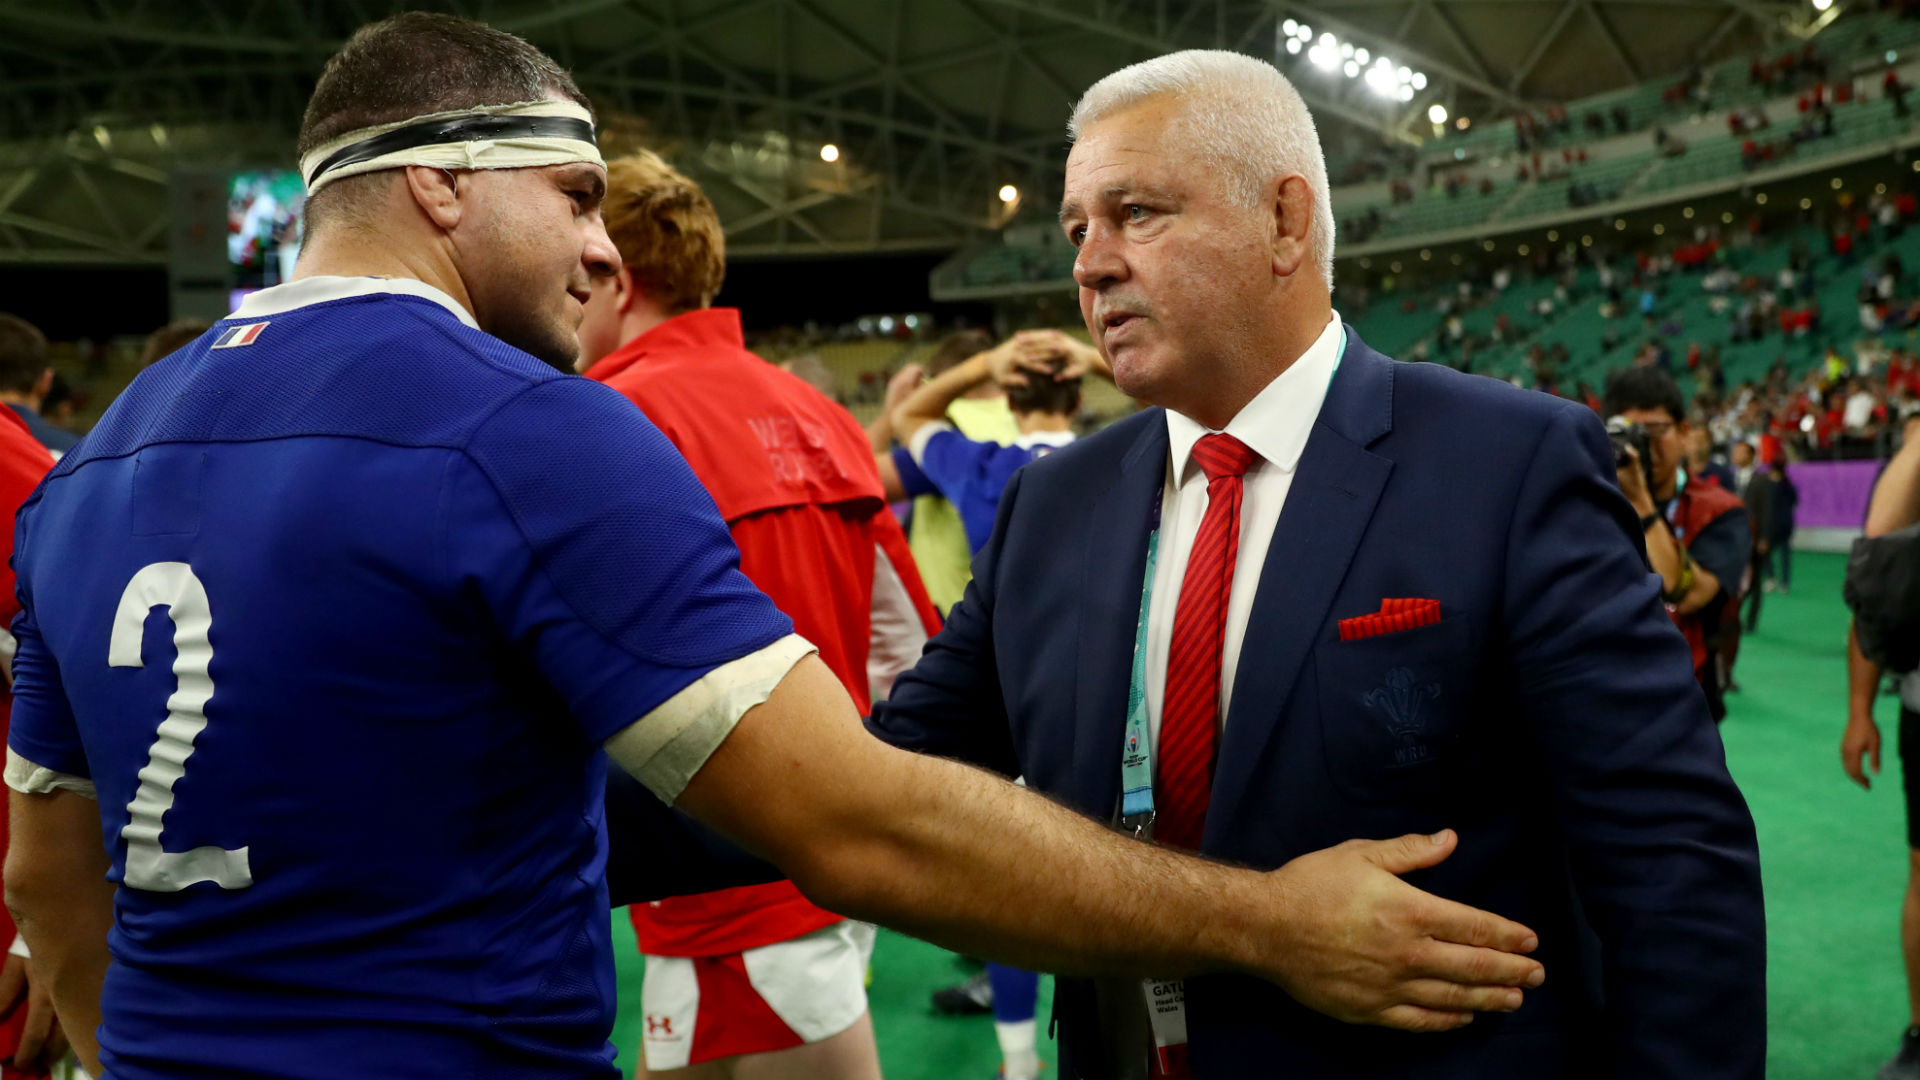 Rugby World Cup 2019: The better team lost - Gatland